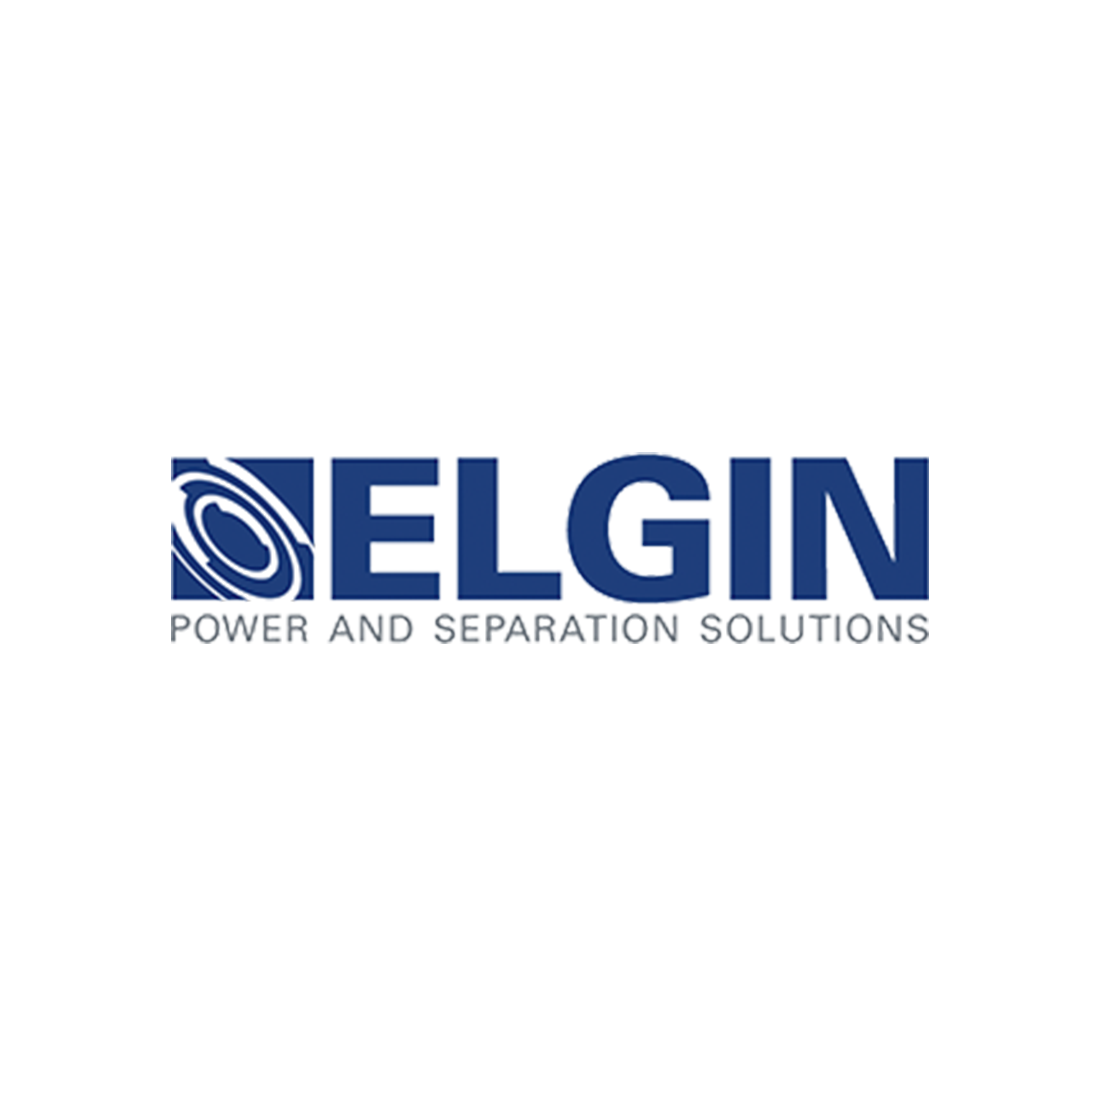 Elgin Power and Separation Solutions